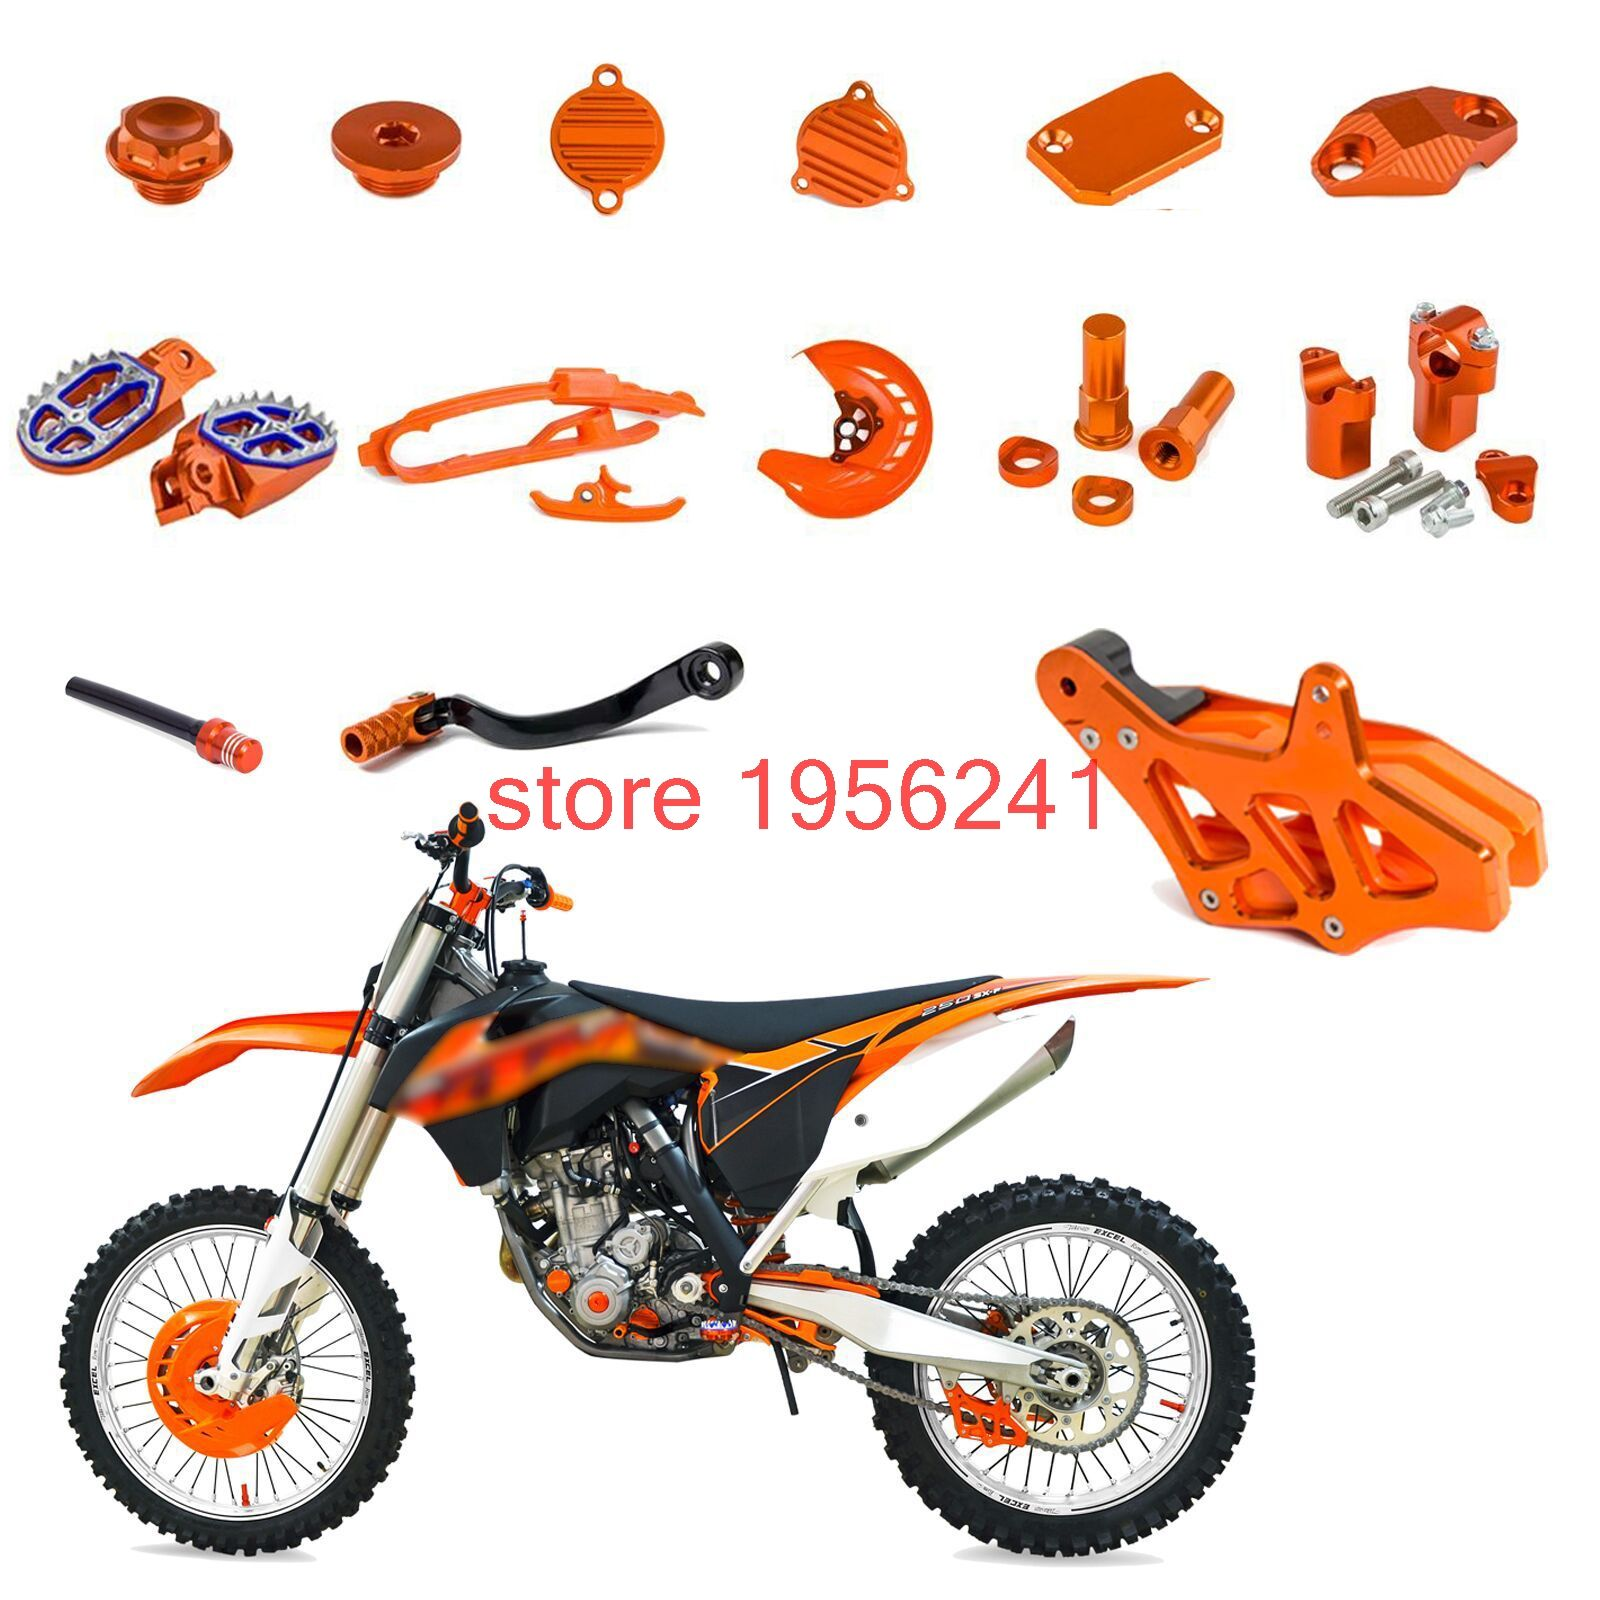 Gear Shifter Brake Hose Clamp Reservoir Cover Chain Guide Foot Pegs Other For Ktm 250 Sxf Sx F Exc F Xcf Xc F Xcf W Ktm Ktm 250 Ktm 250